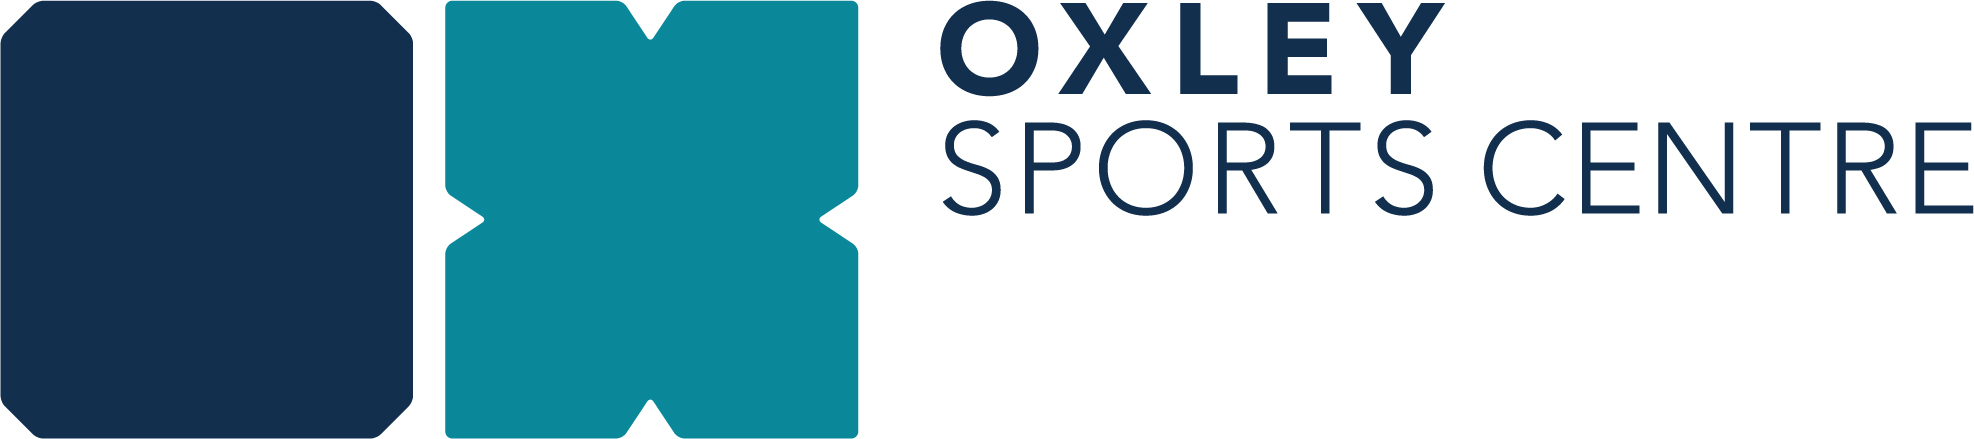 Job opportunity: Fitness Instructor (part time), Sherborne, UK with Oxley Sports Centre